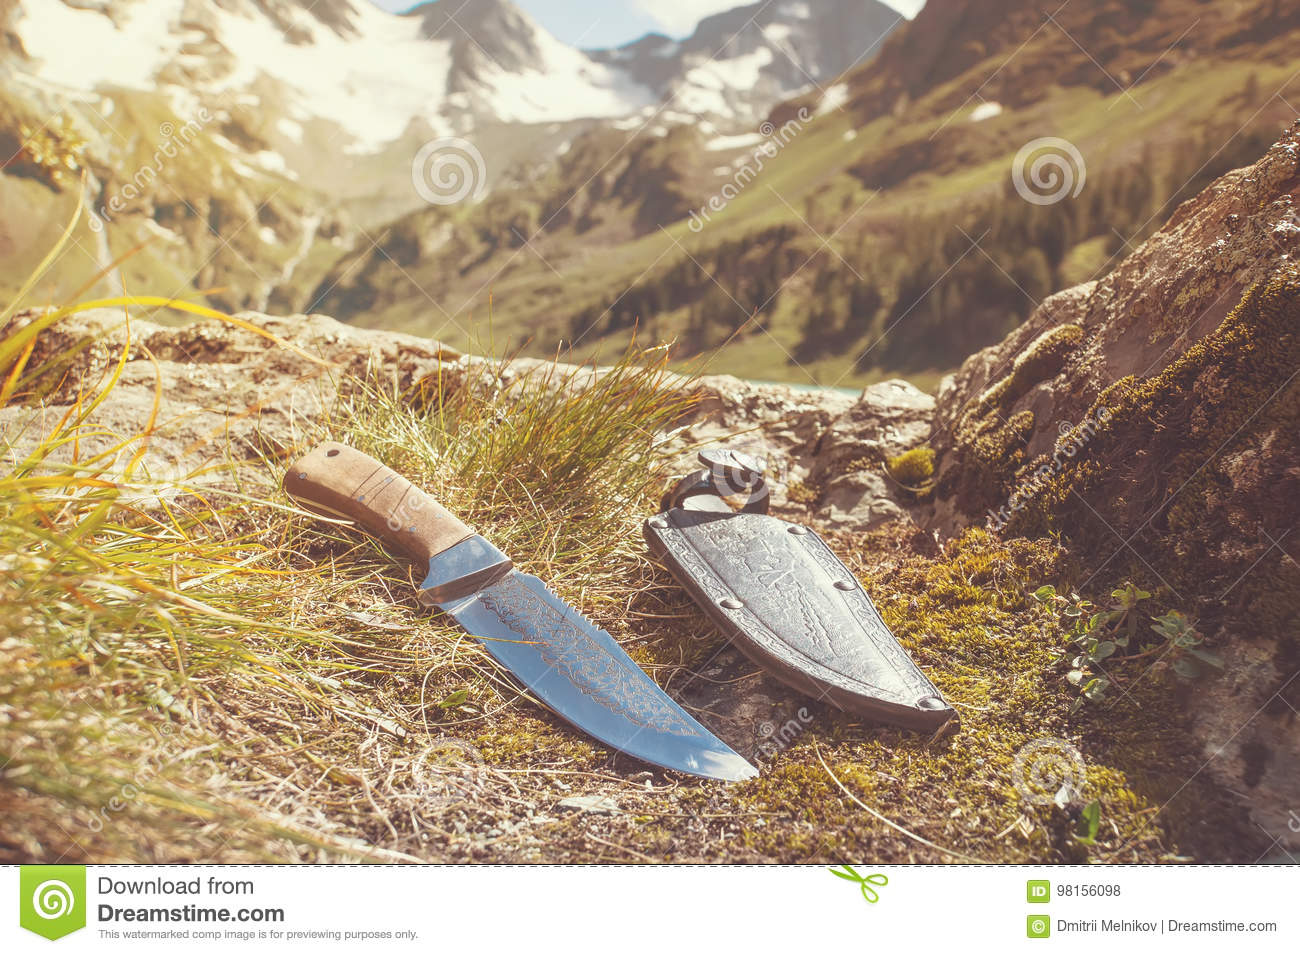 A Mountain Man Knife And Leather Sheath Displayed Stock Photo